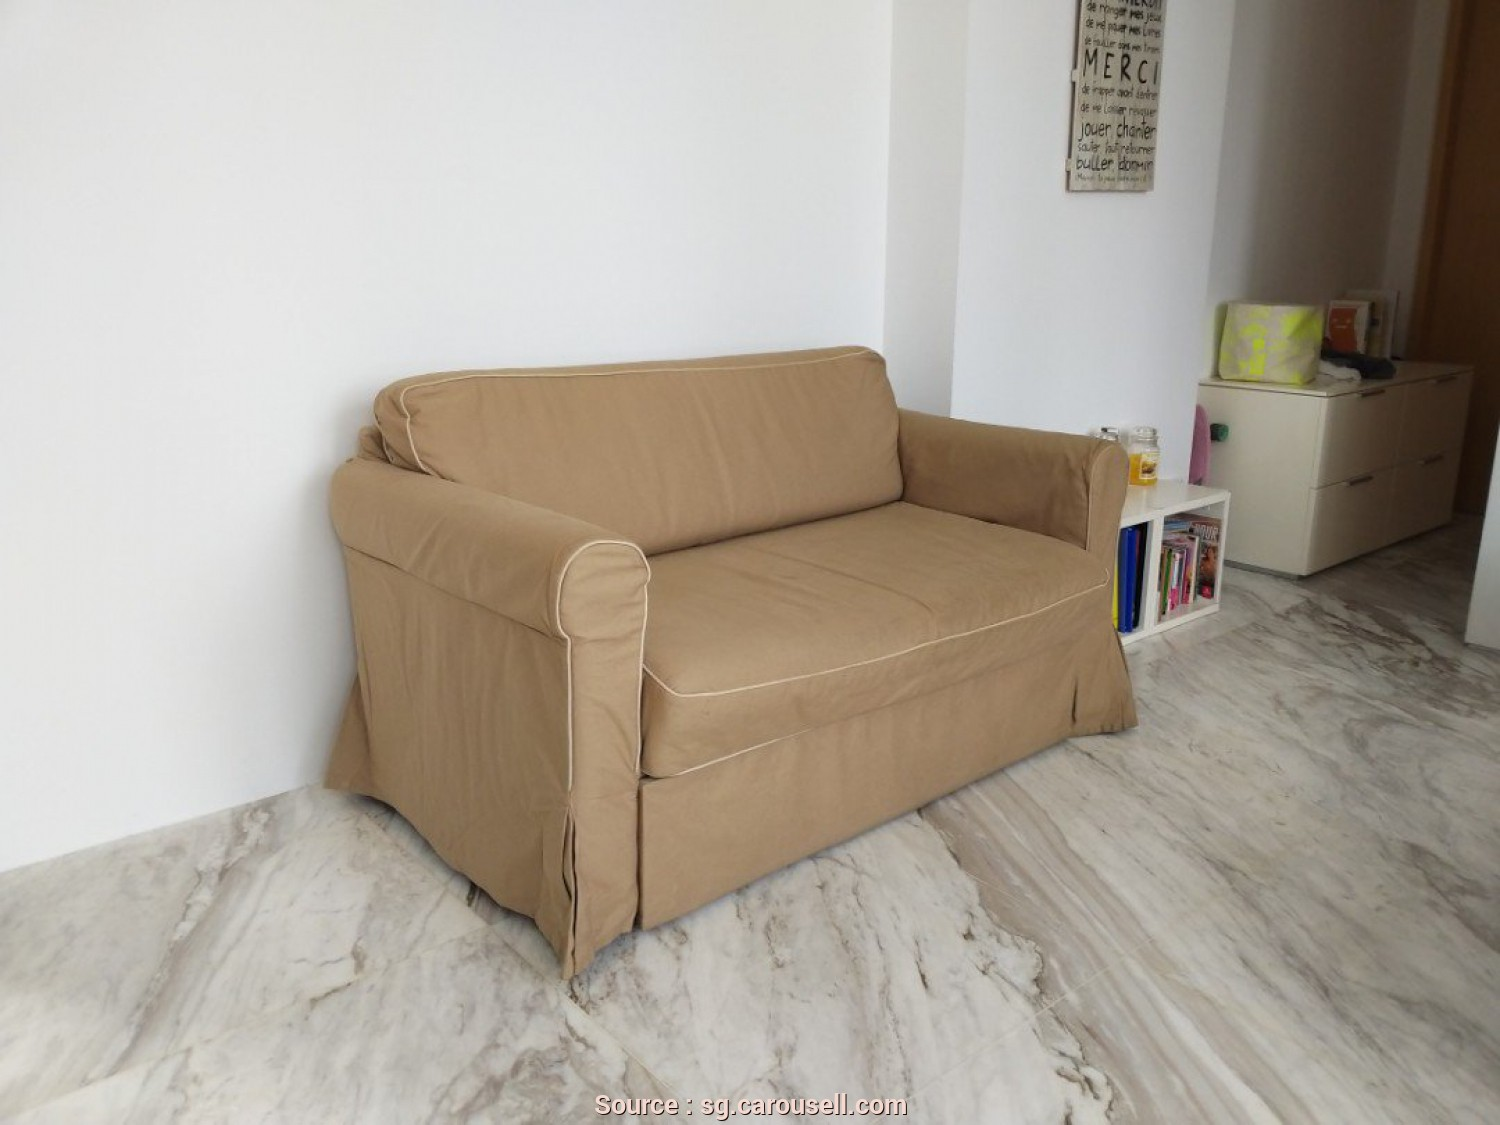 Ikea Backabro Koltuk, Magnifico IKEA BACKABRO Two-Seat Sofa-Bed